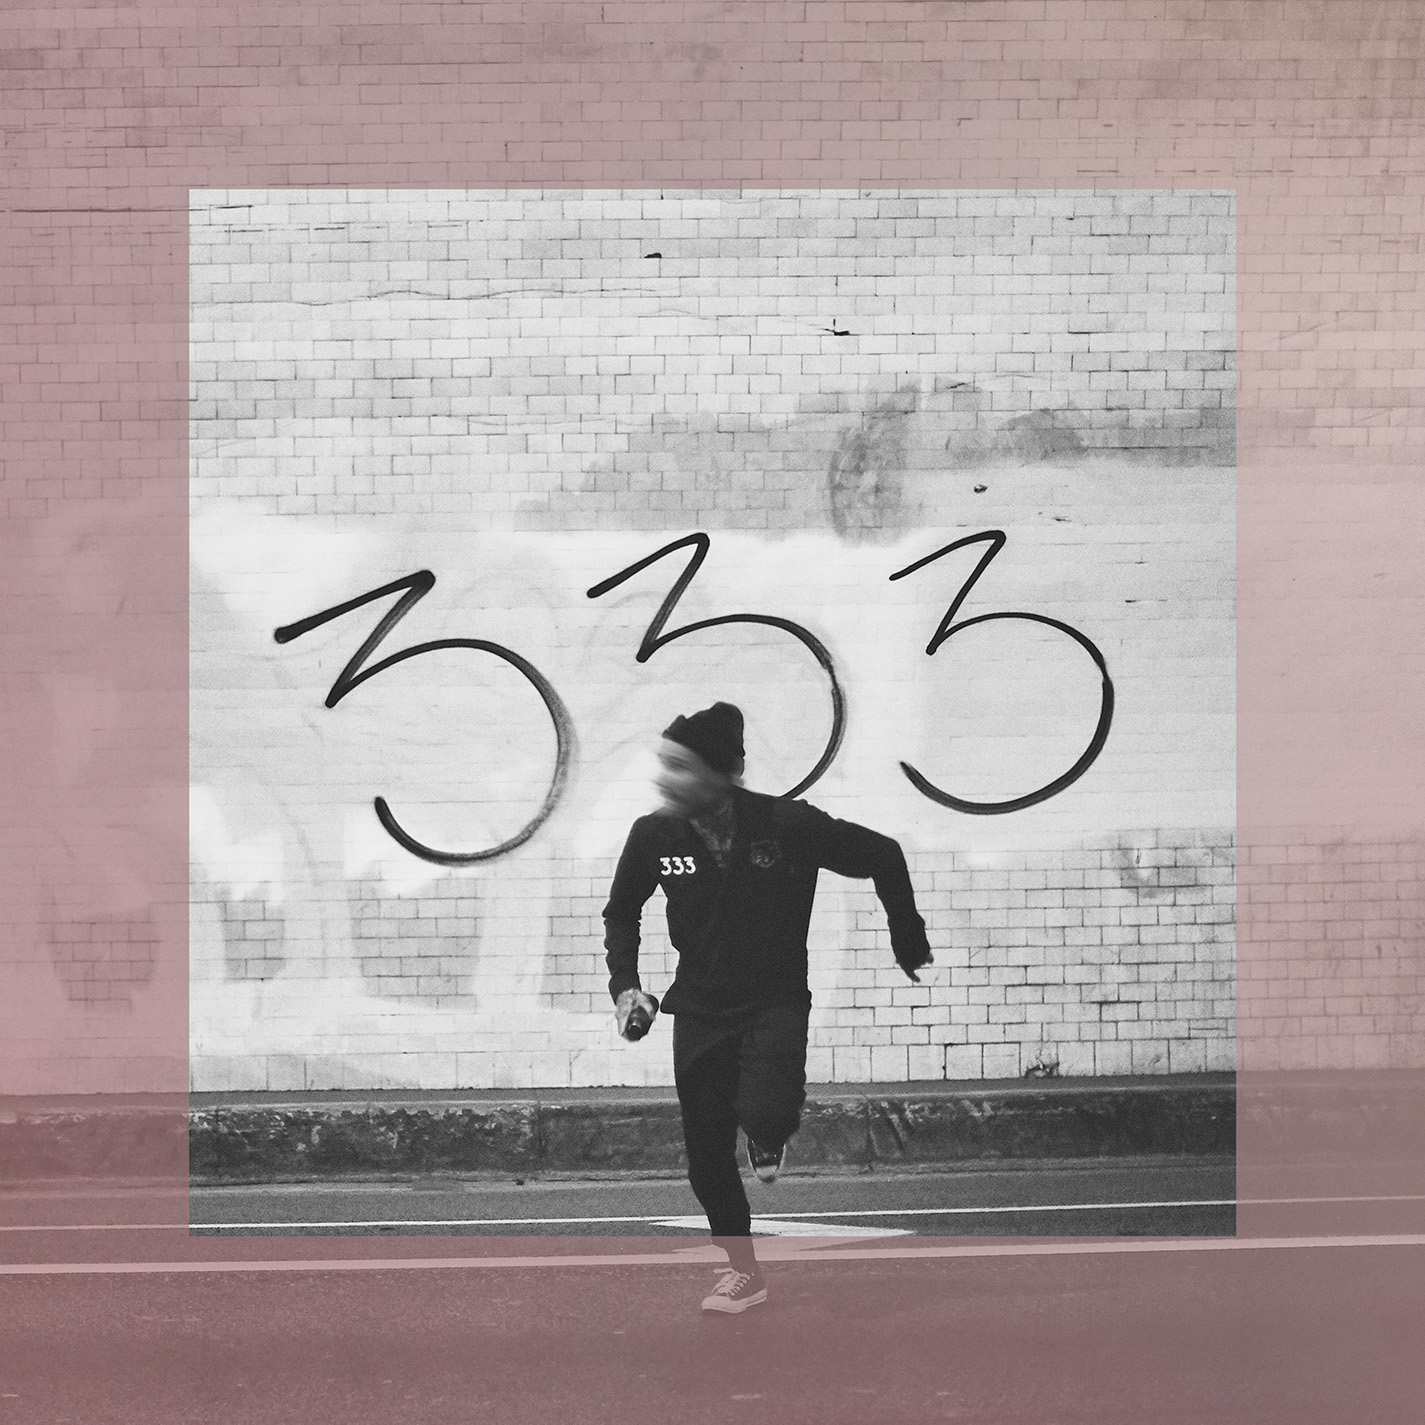 13. FEVER 333 - Strength In Numbers